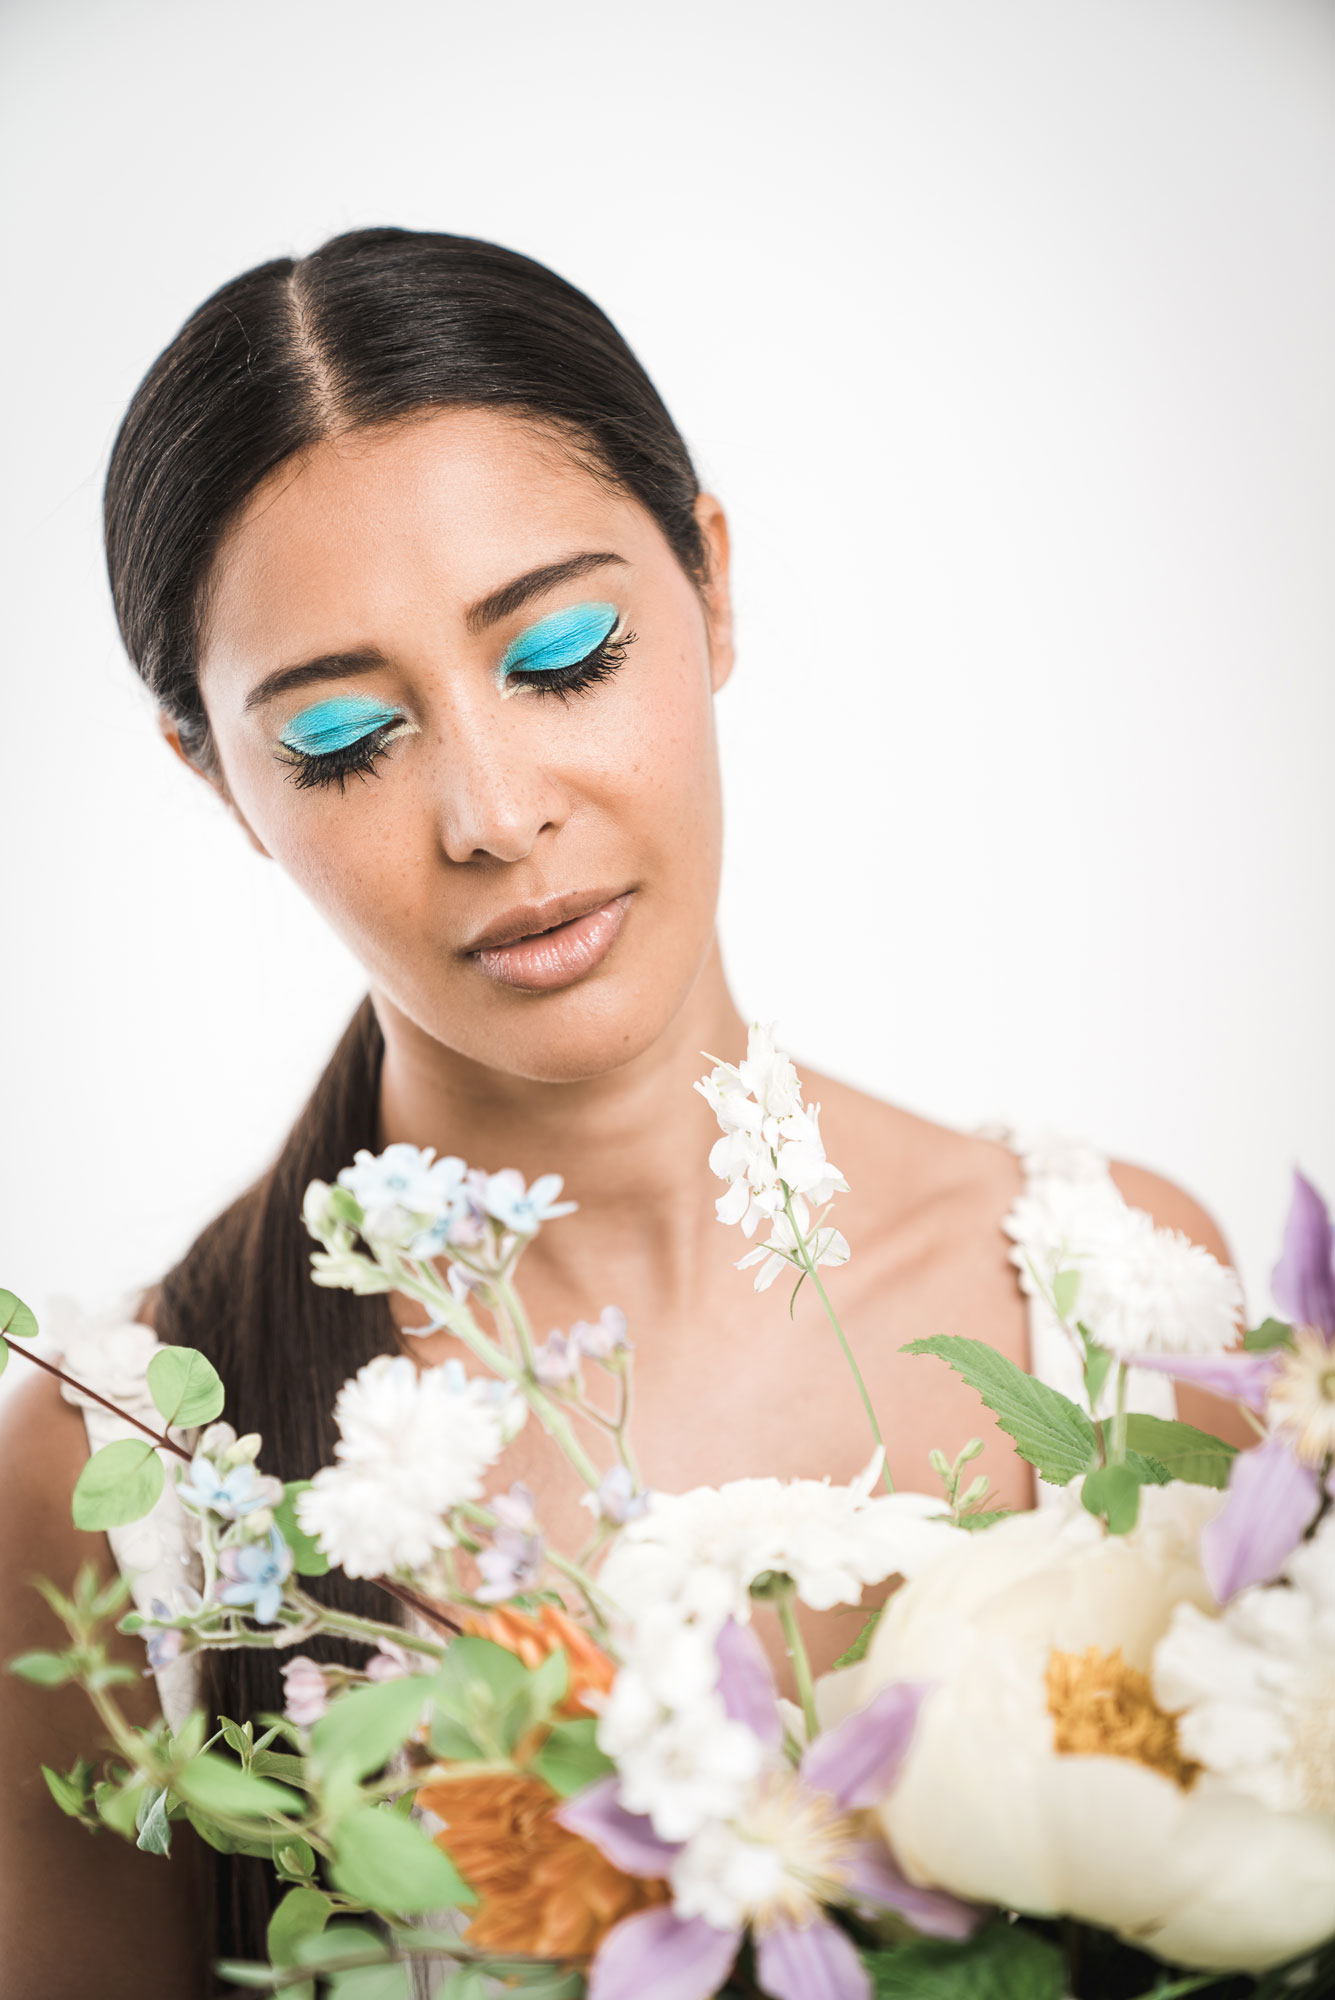 maquillage moderne colore nantes